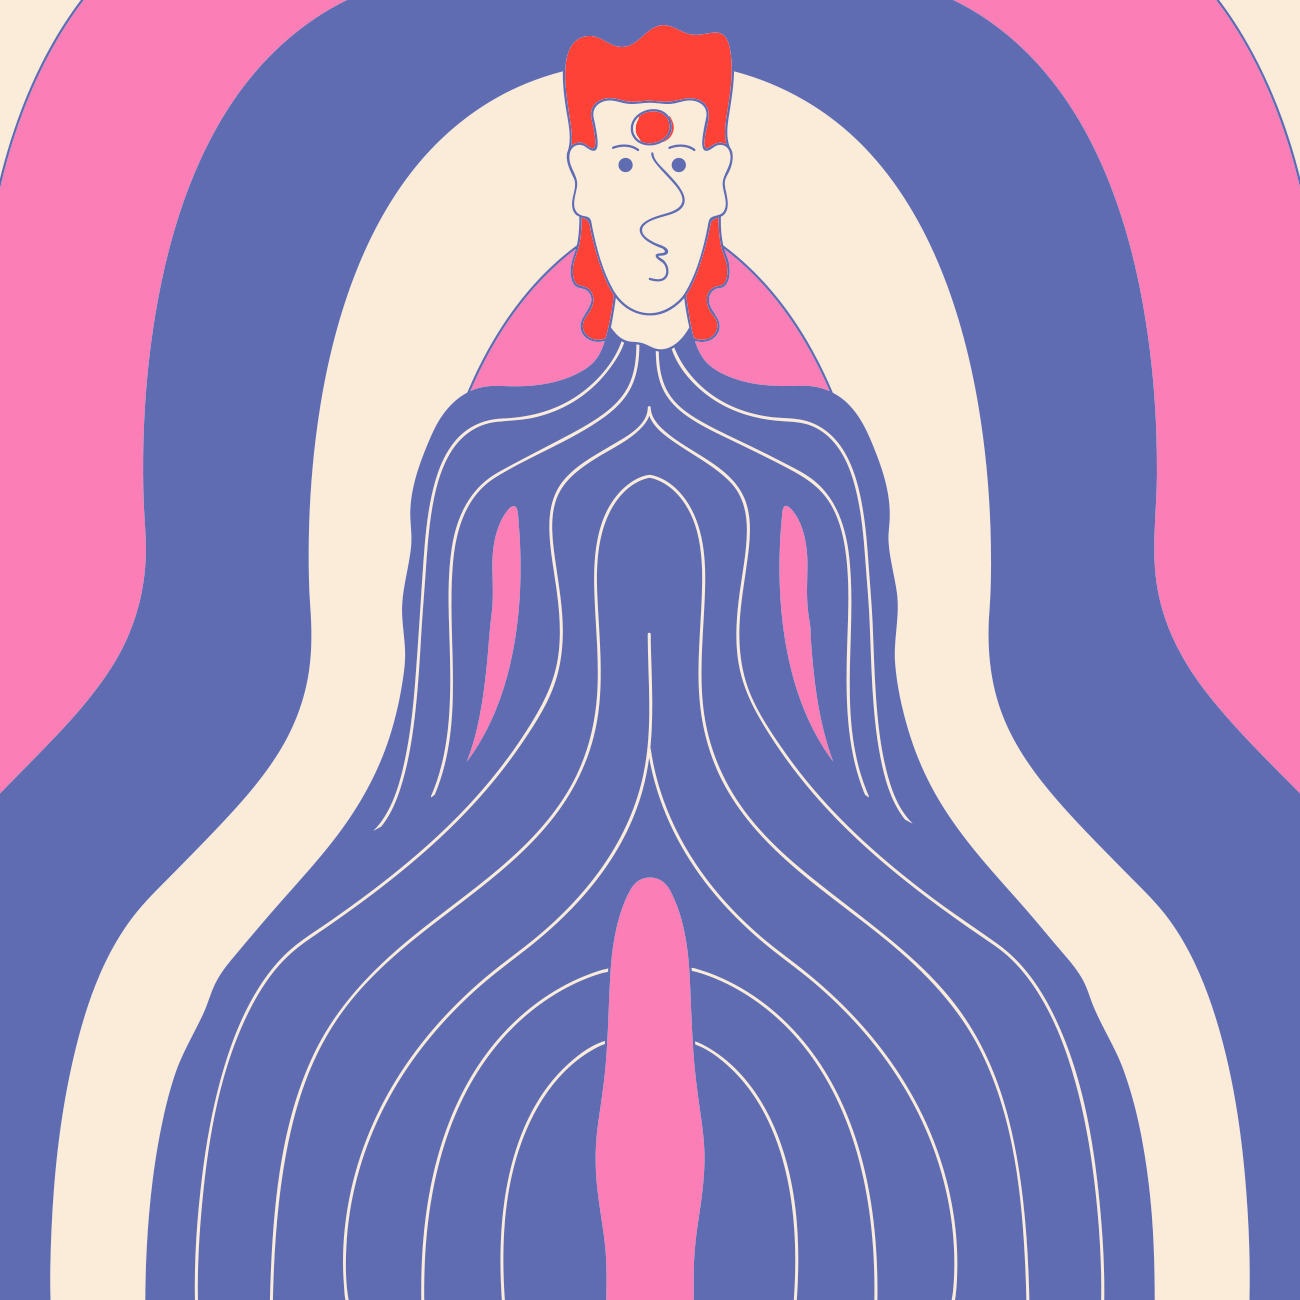 BOWIE - illustration, davidbowie - david_palma | ello